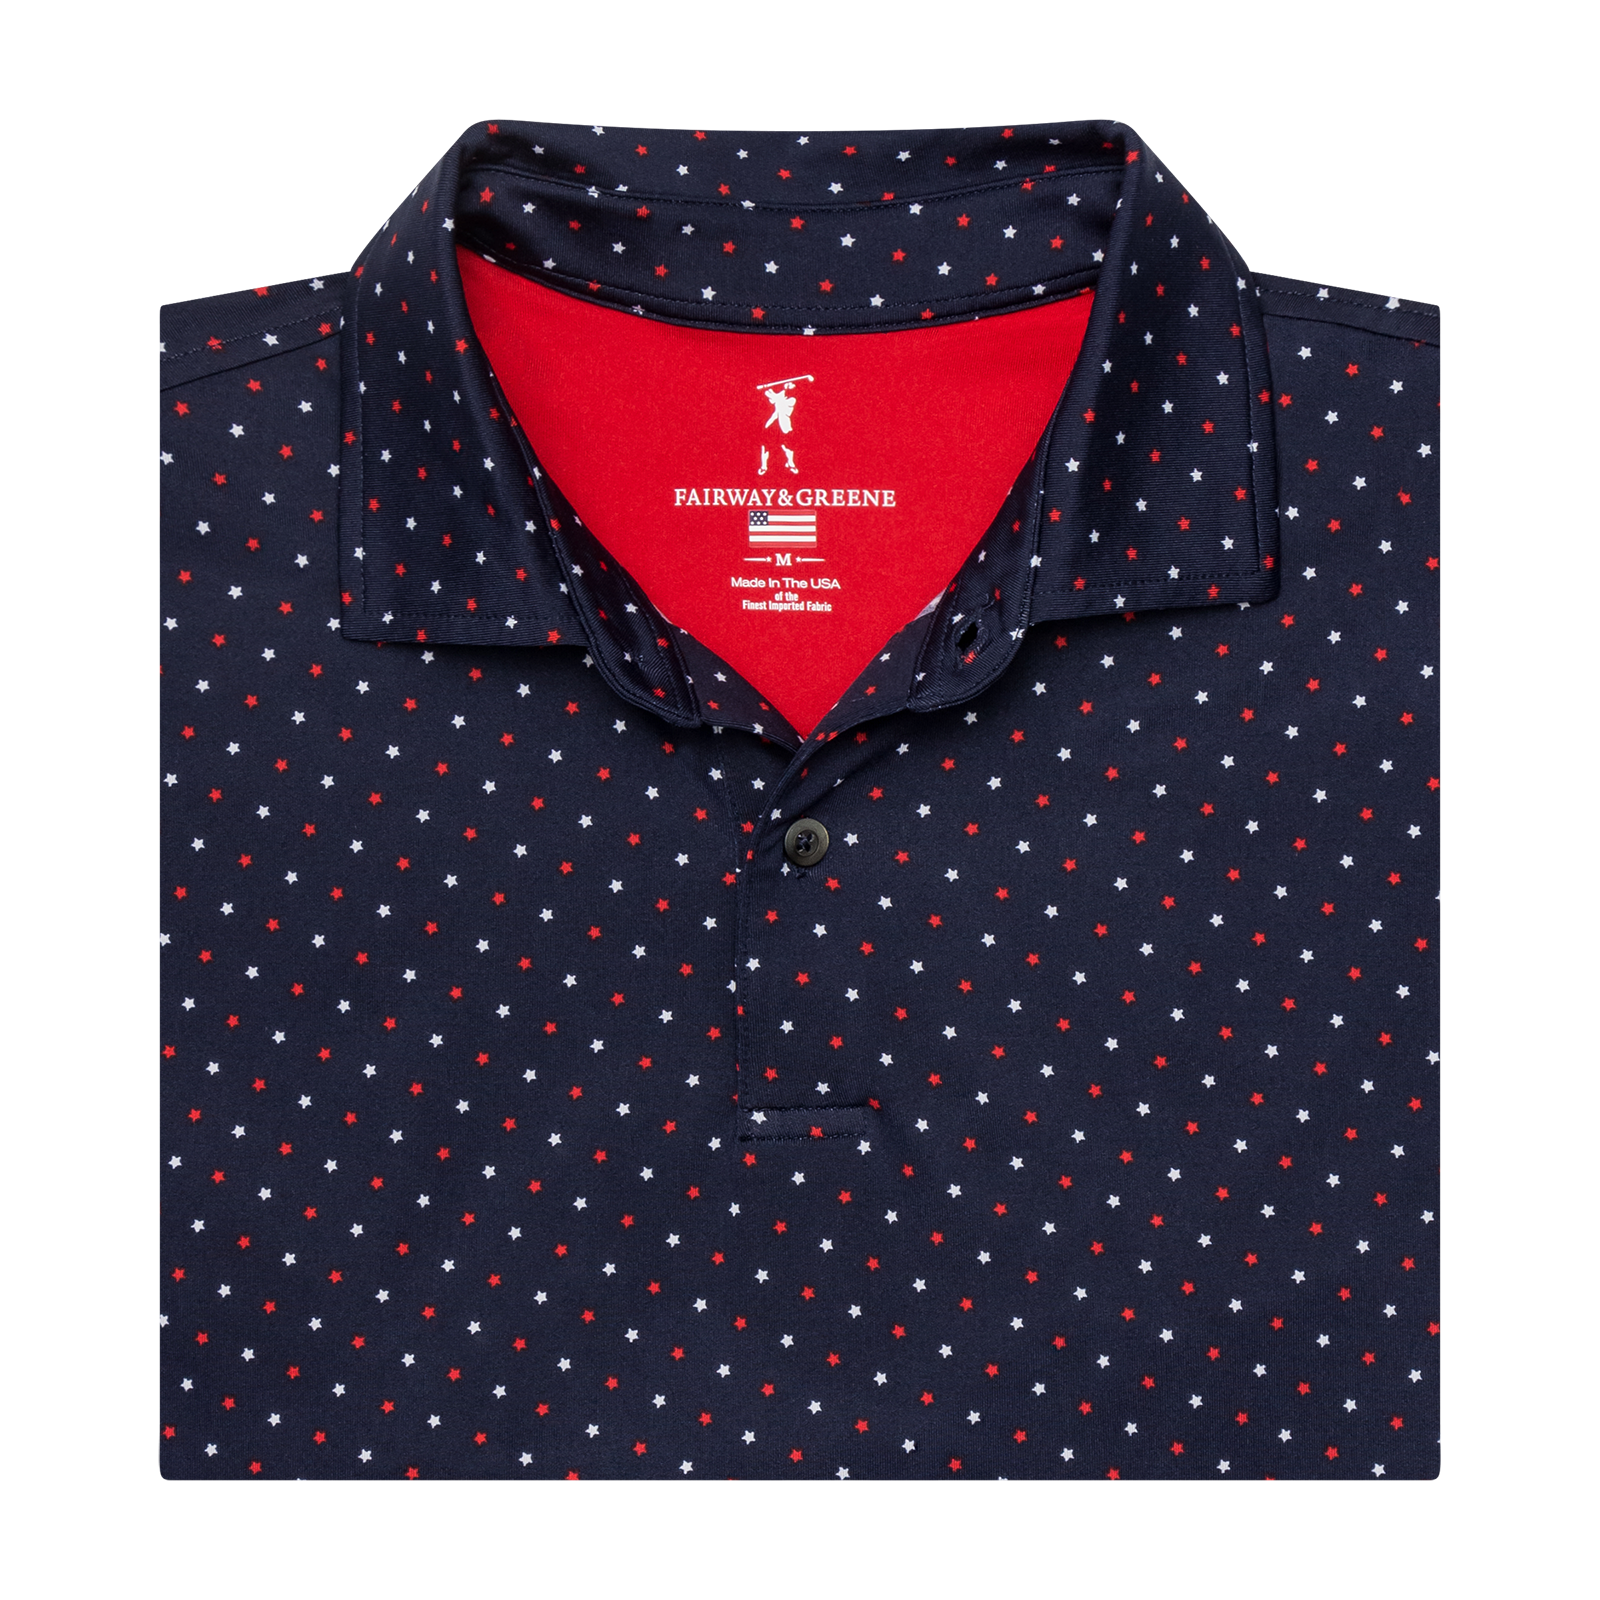 Polo close up product photography